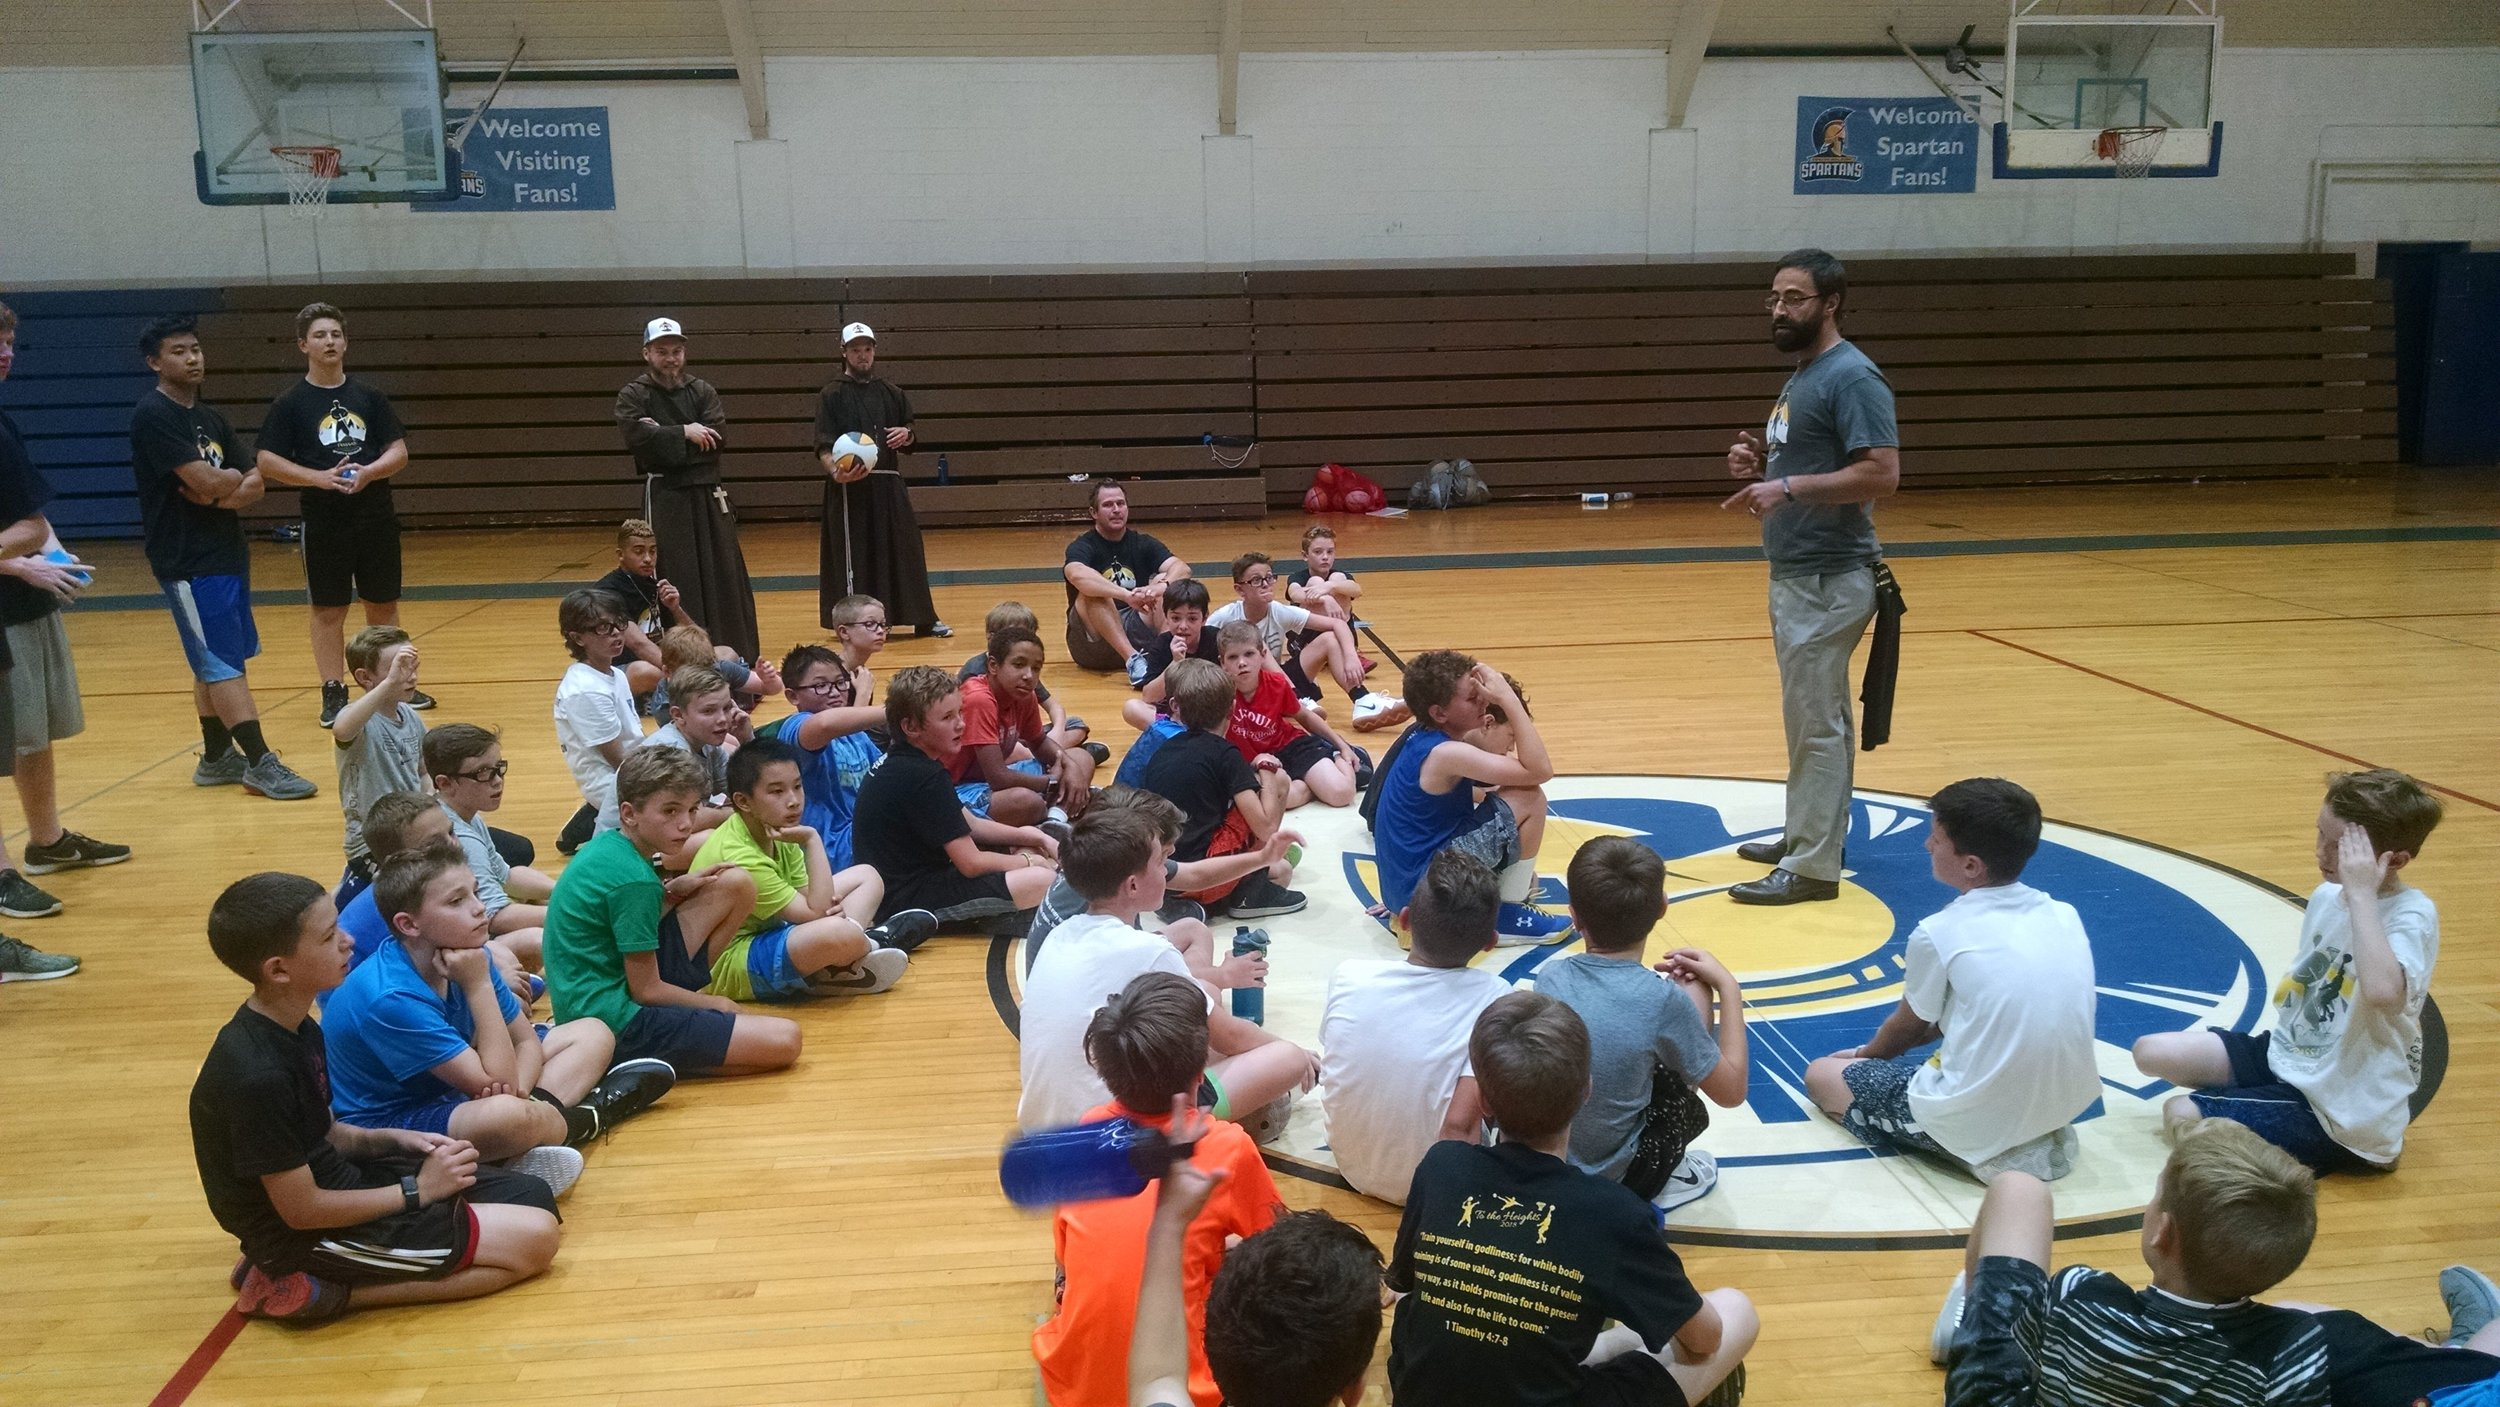 """Thomas Wurtz of Varsity Catholic: - """"These camps demonstrate what sports should be about - the forming of our youth as disciples. We need these all over the country."""""""